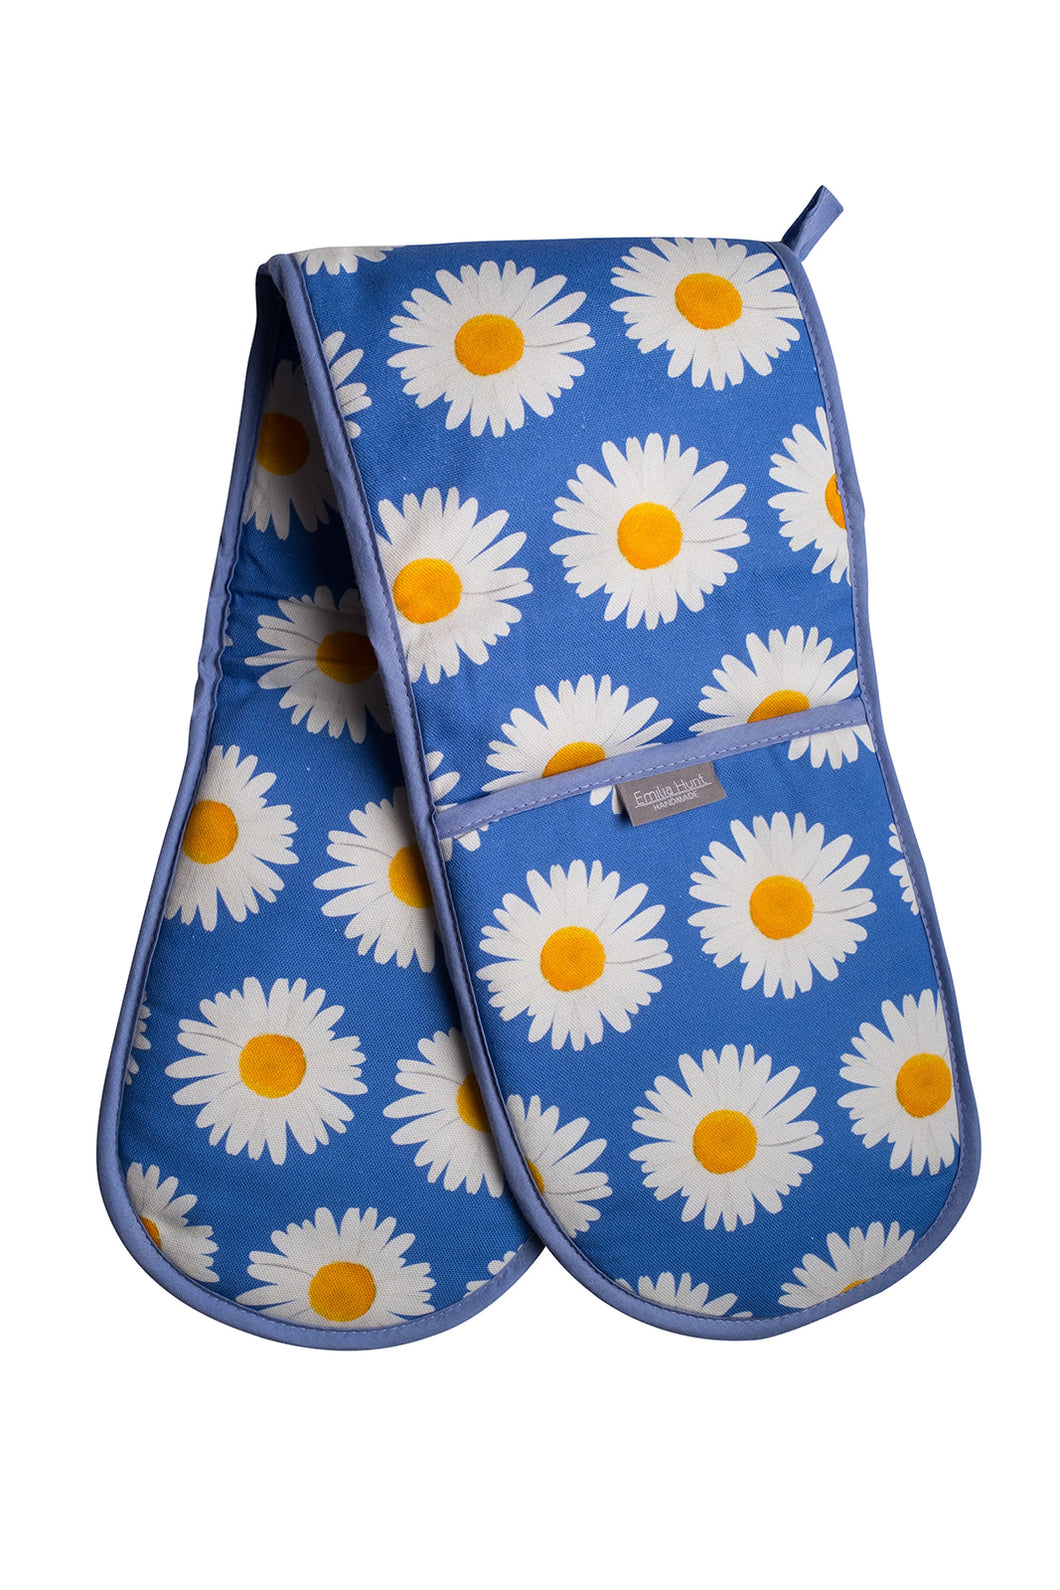 Daisy Double Oven Gloves